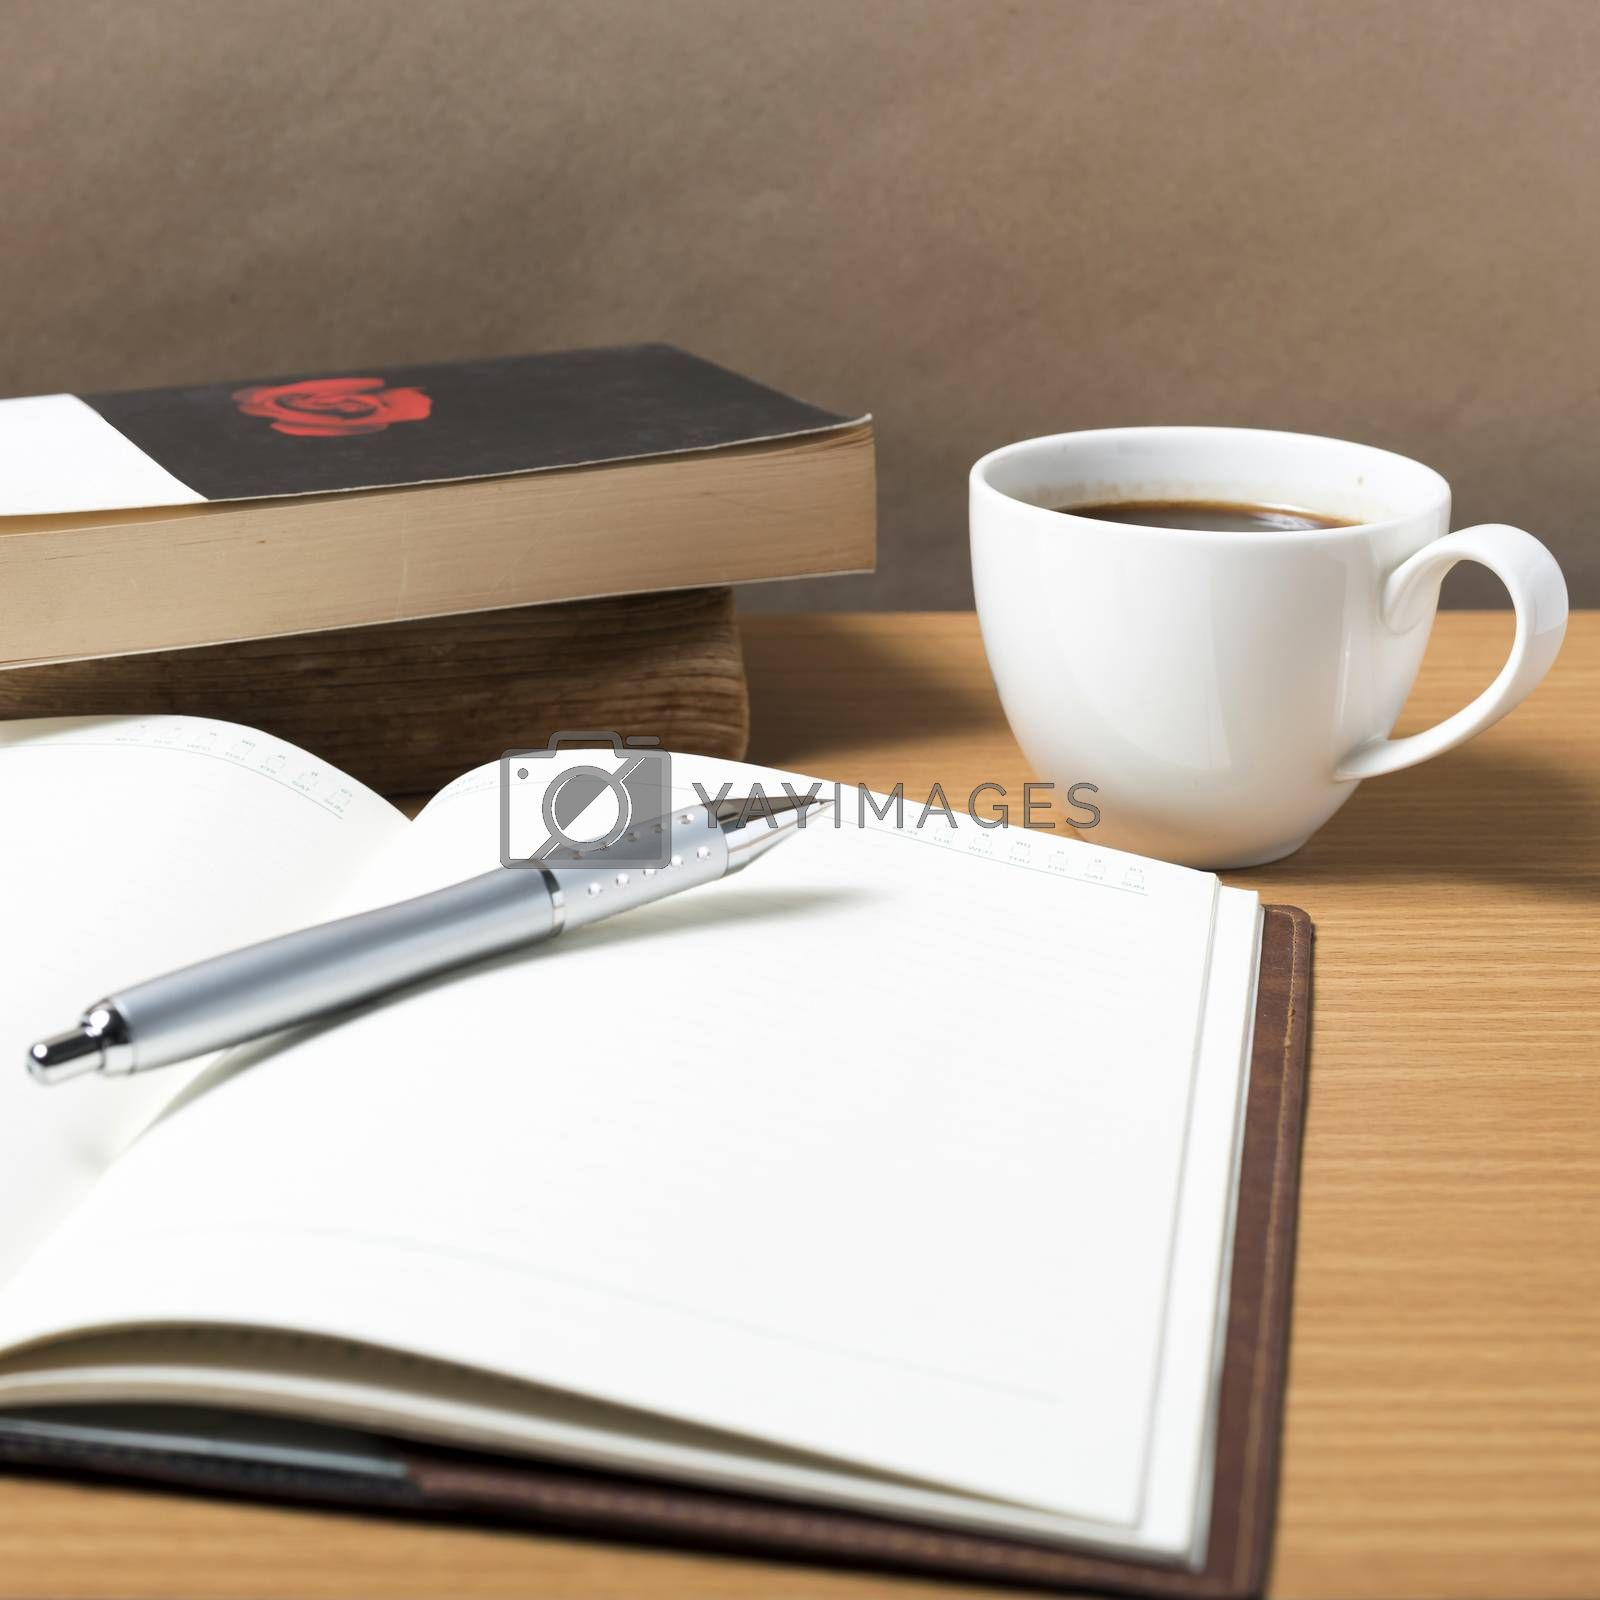 Royalty free image of open book with coffee by ammza12